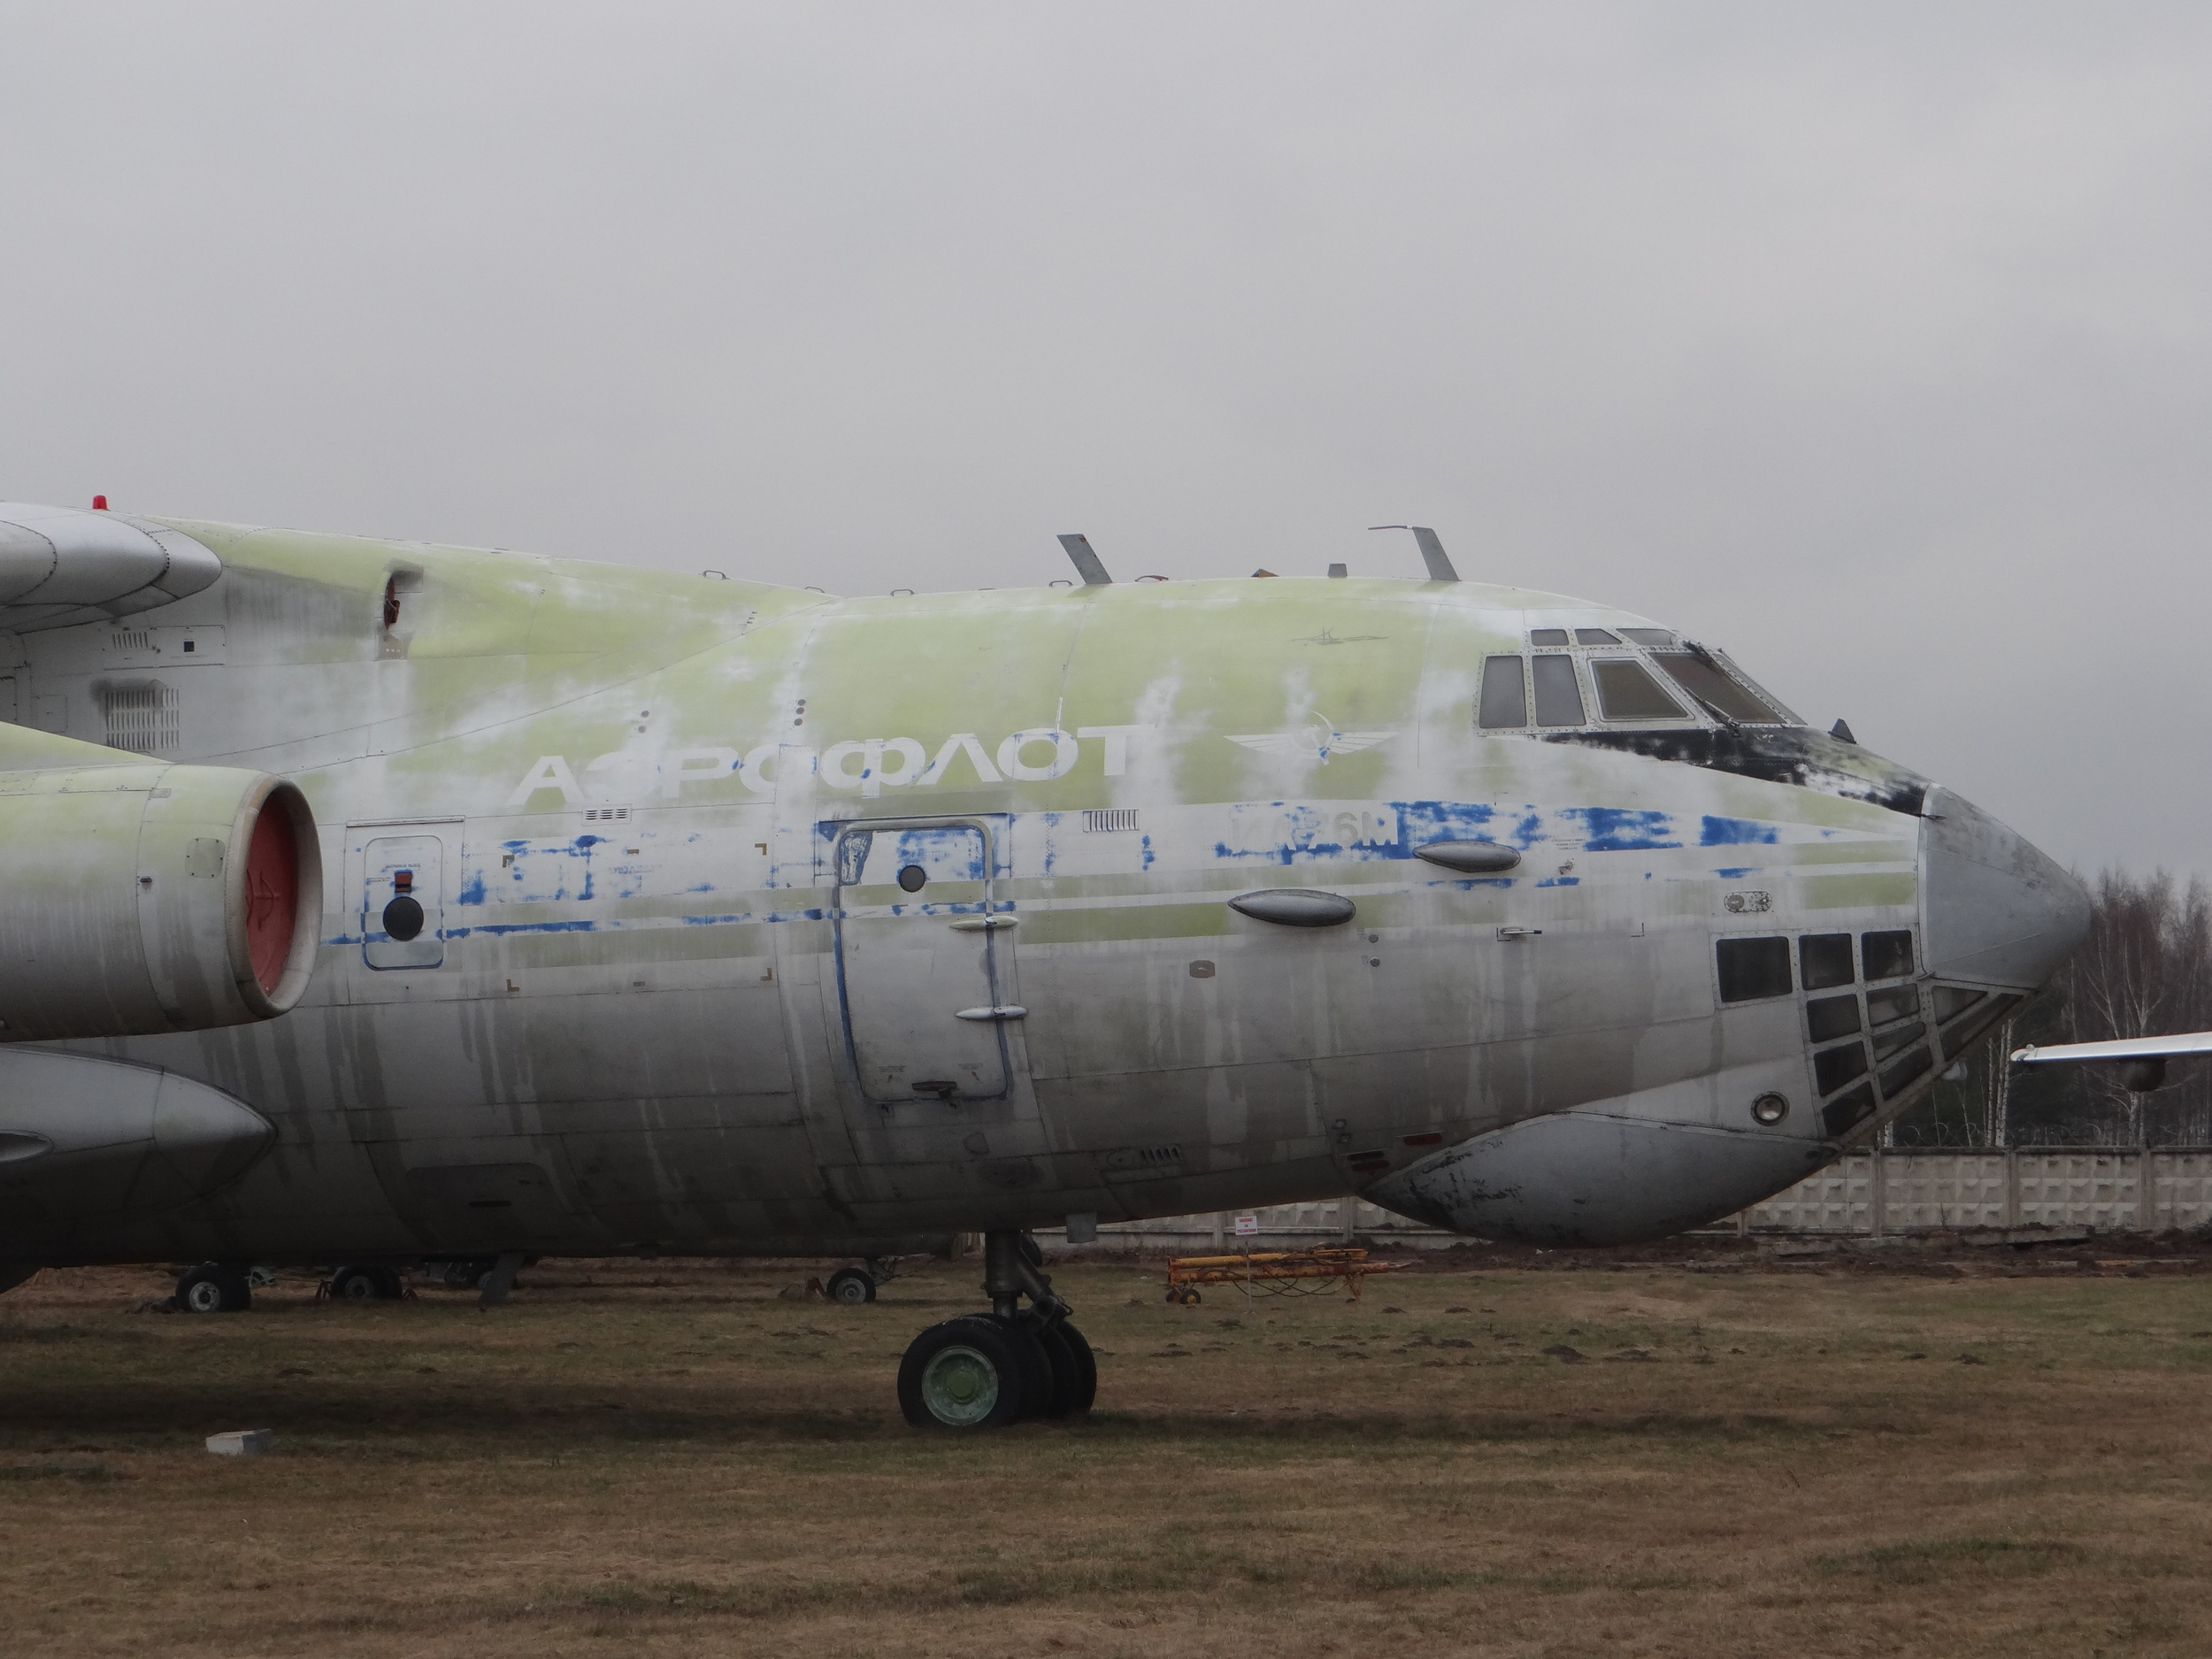 The Il-76 has been used in the Soviet Union, Russia and many other countries both  as a civilian airliner  and a military cargo aircraft.